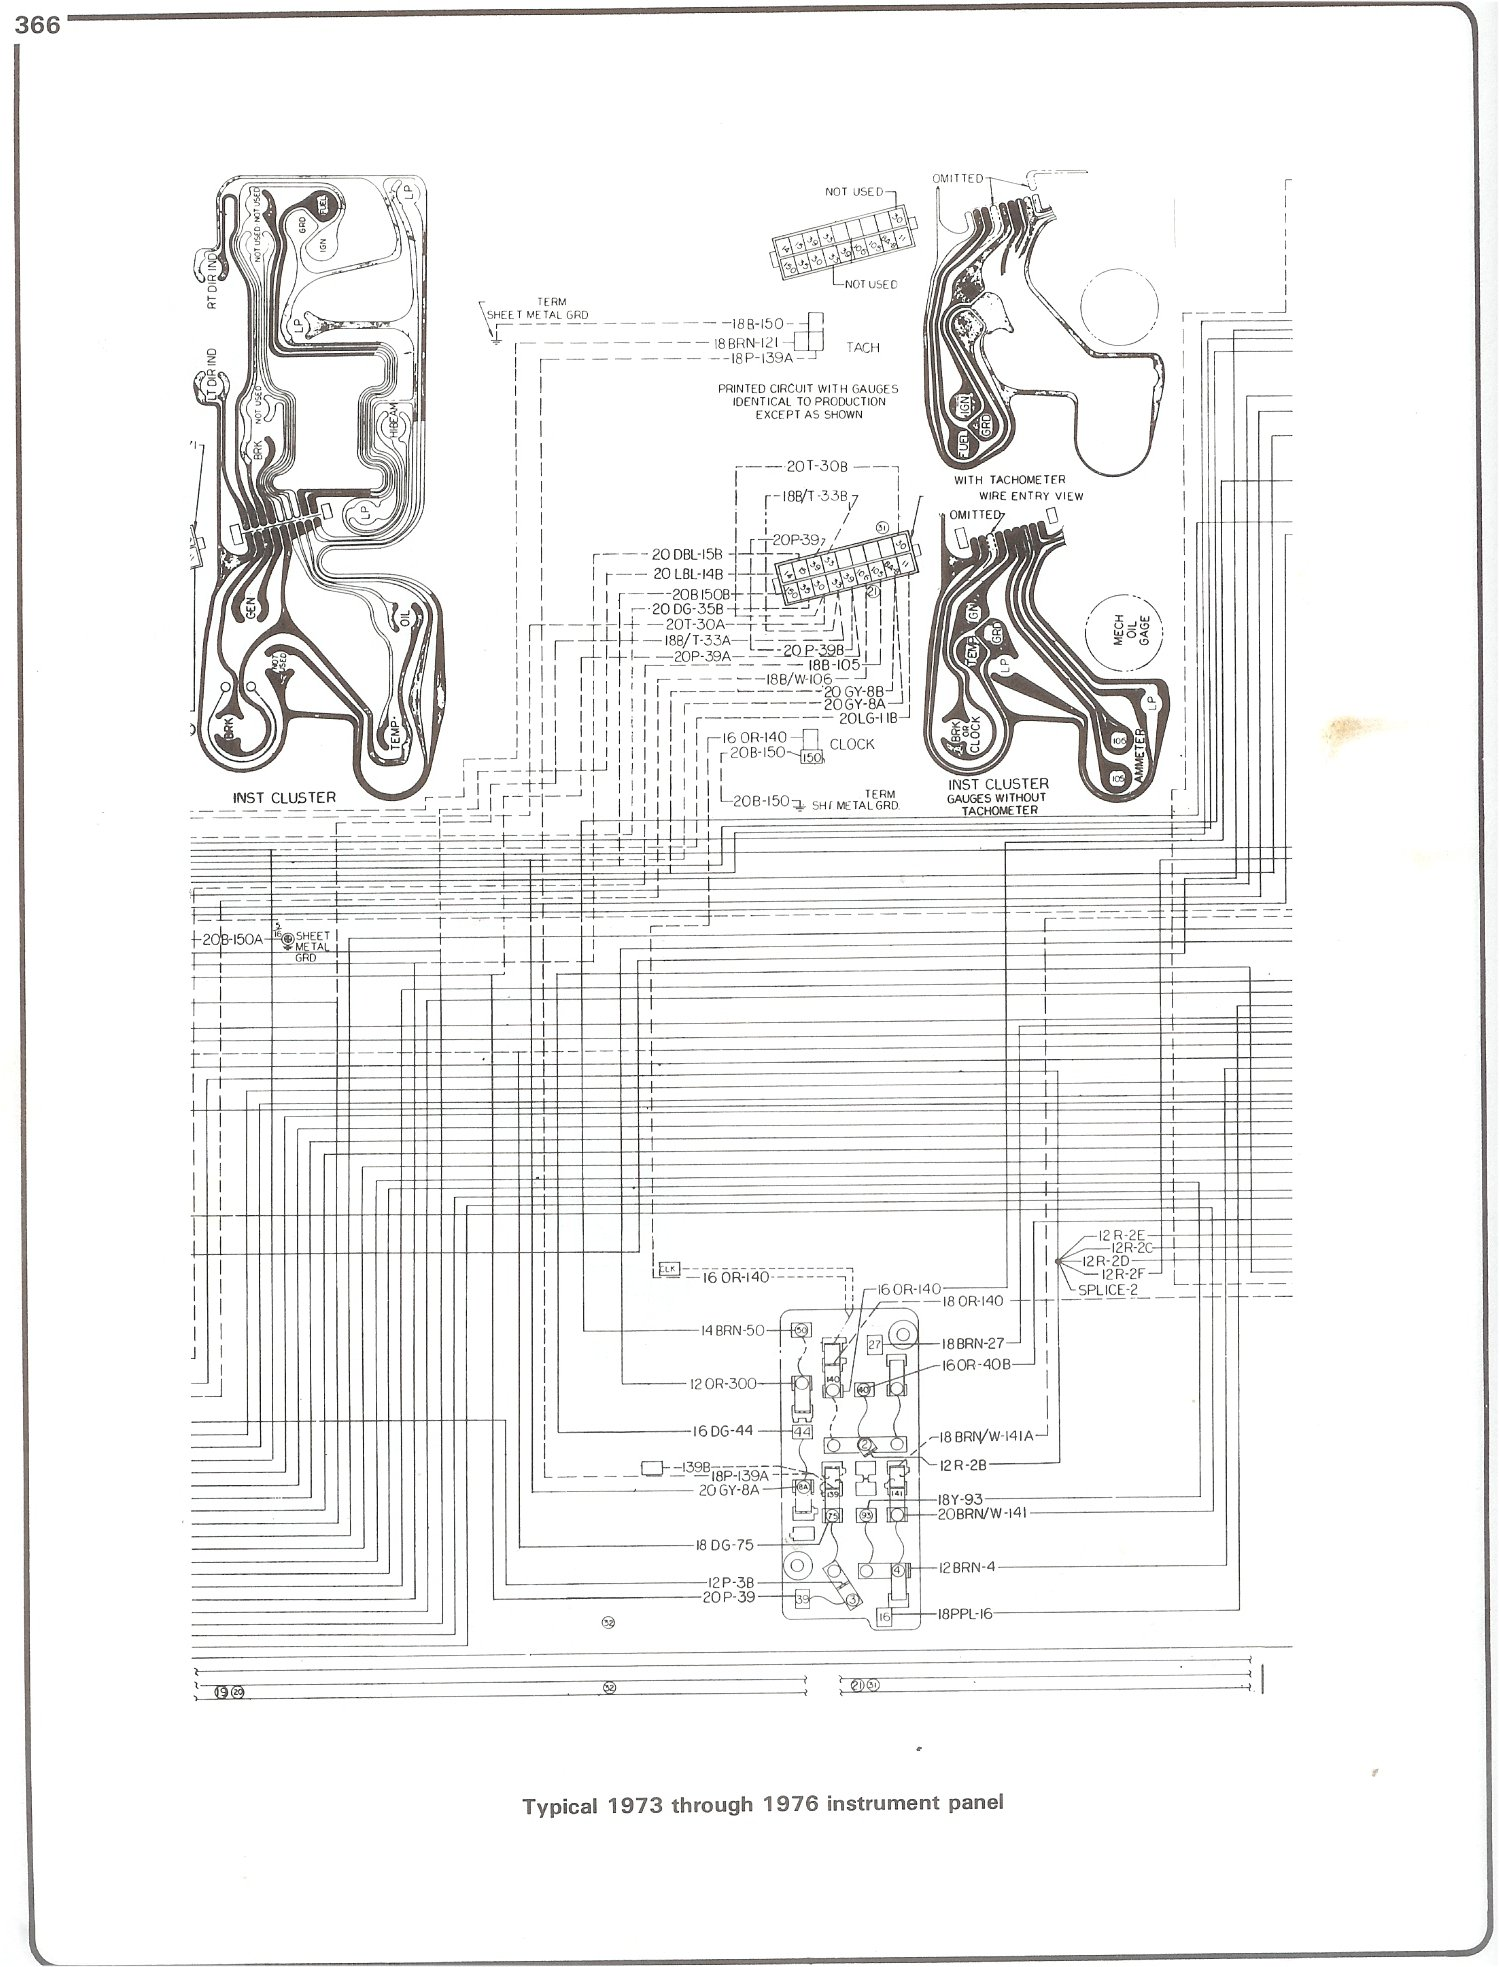 Gm Wiring Gauge - wiring diagrams schematics